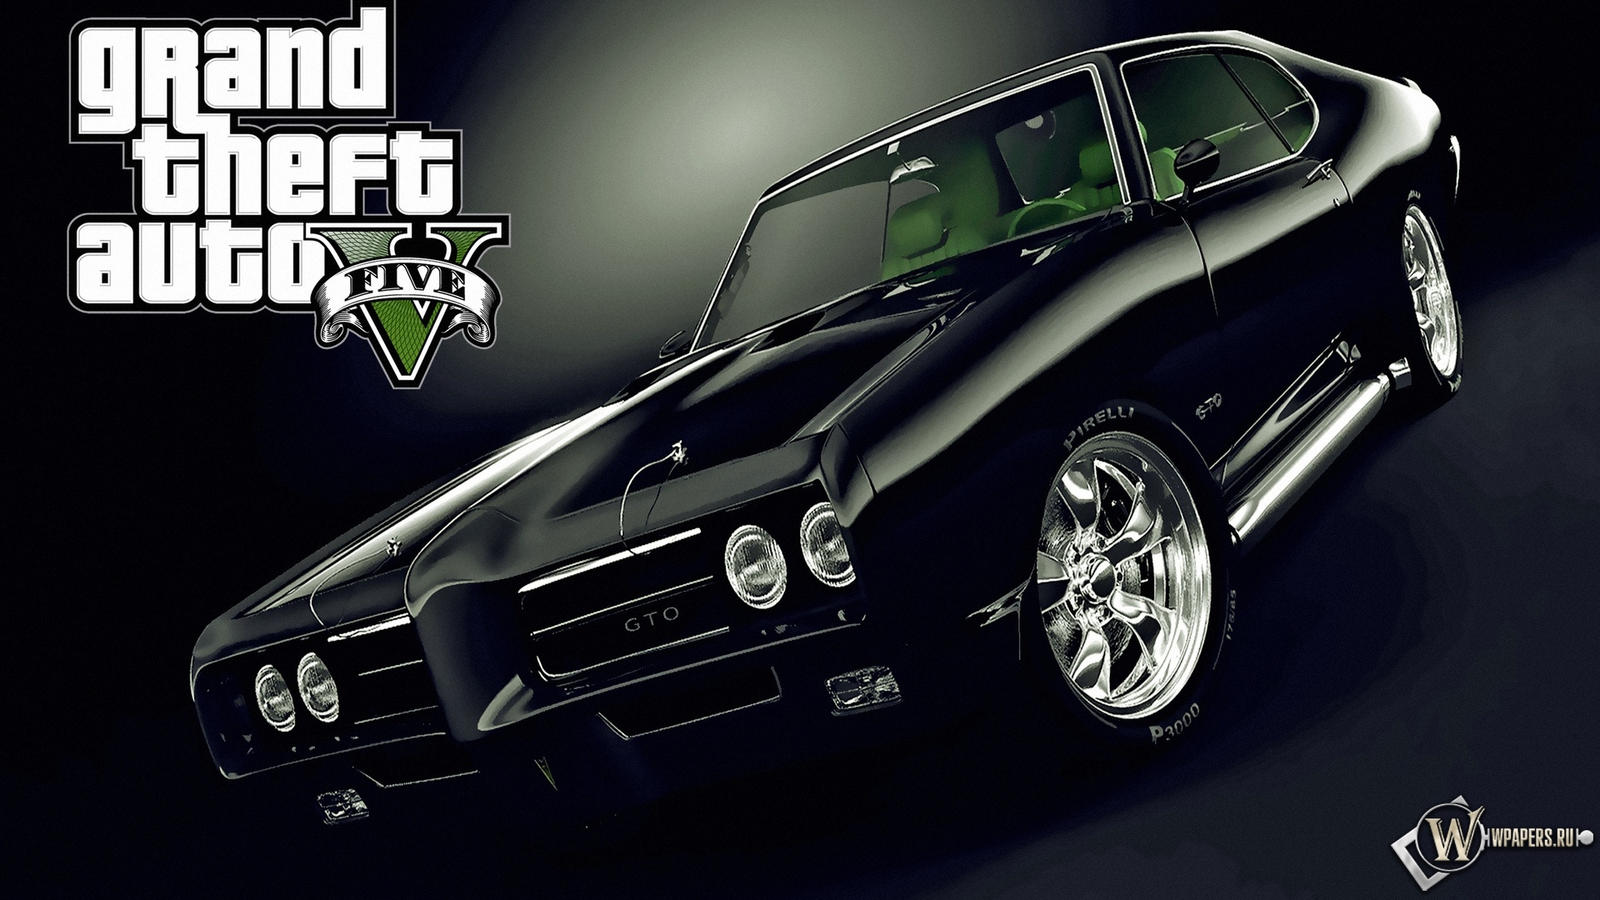 Grand Theft Auto GTA 5 Black Car Wallpapers By